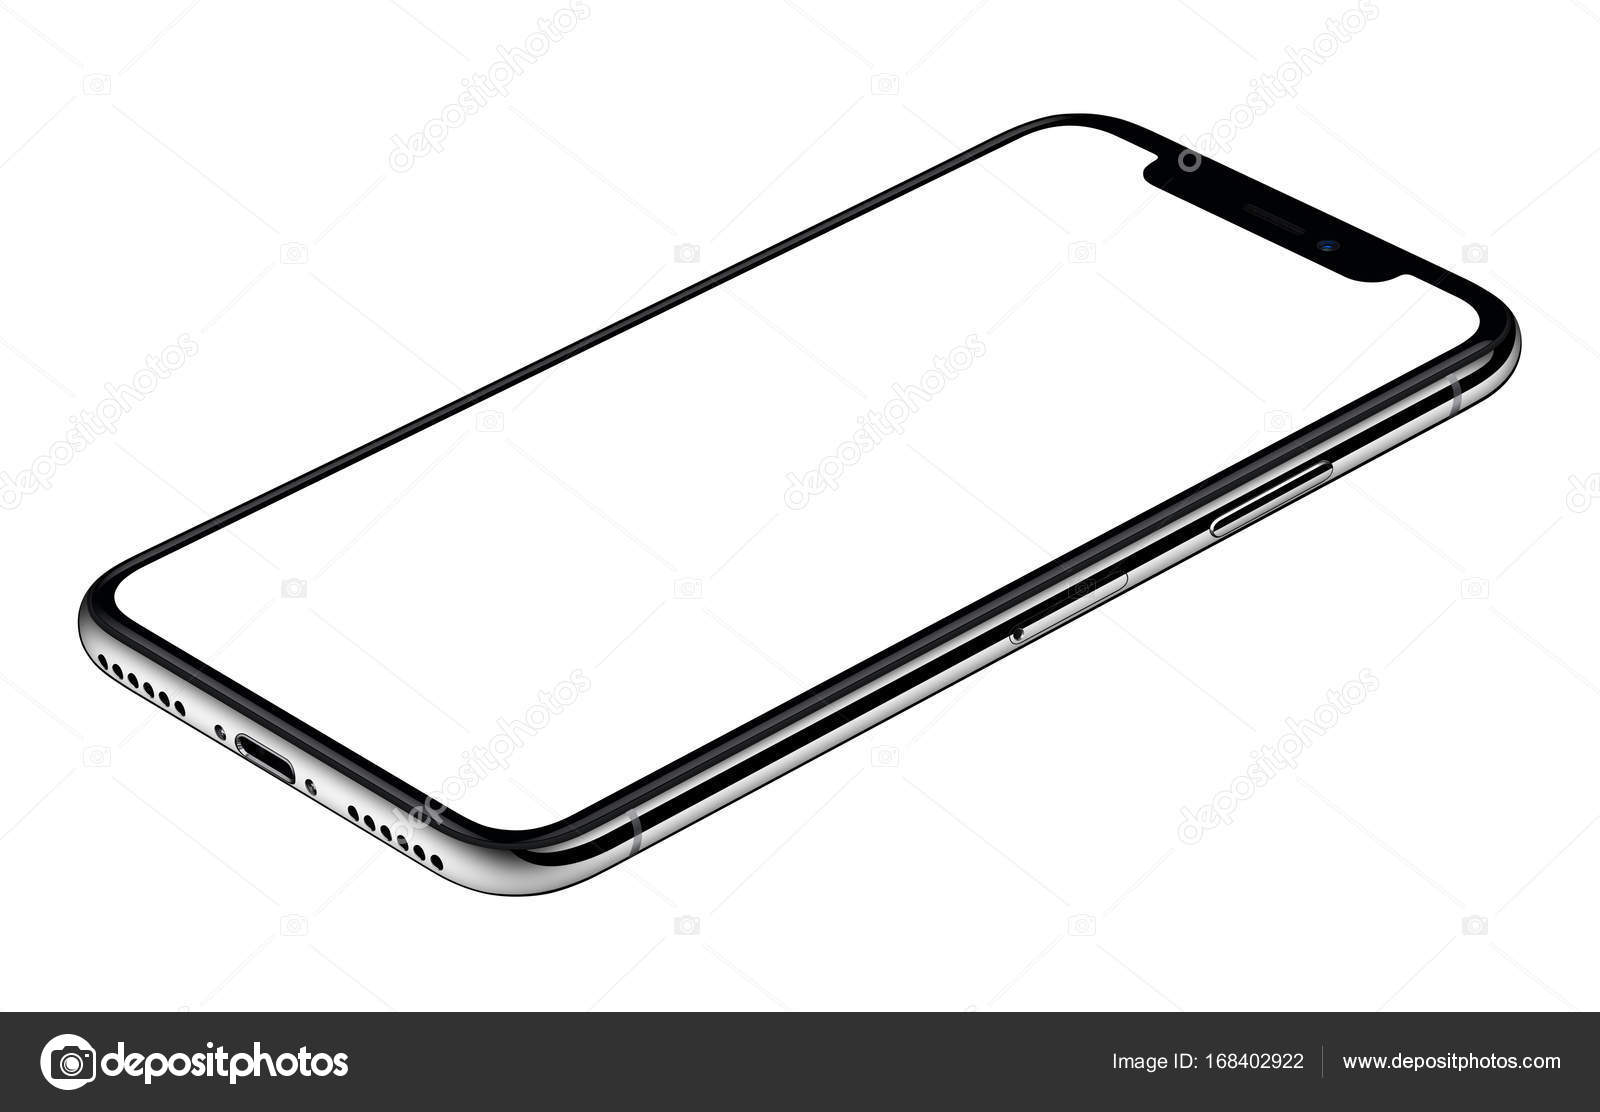 Smartphone Mockup Similar To Iphone X Cw Rotated Lies On Surface